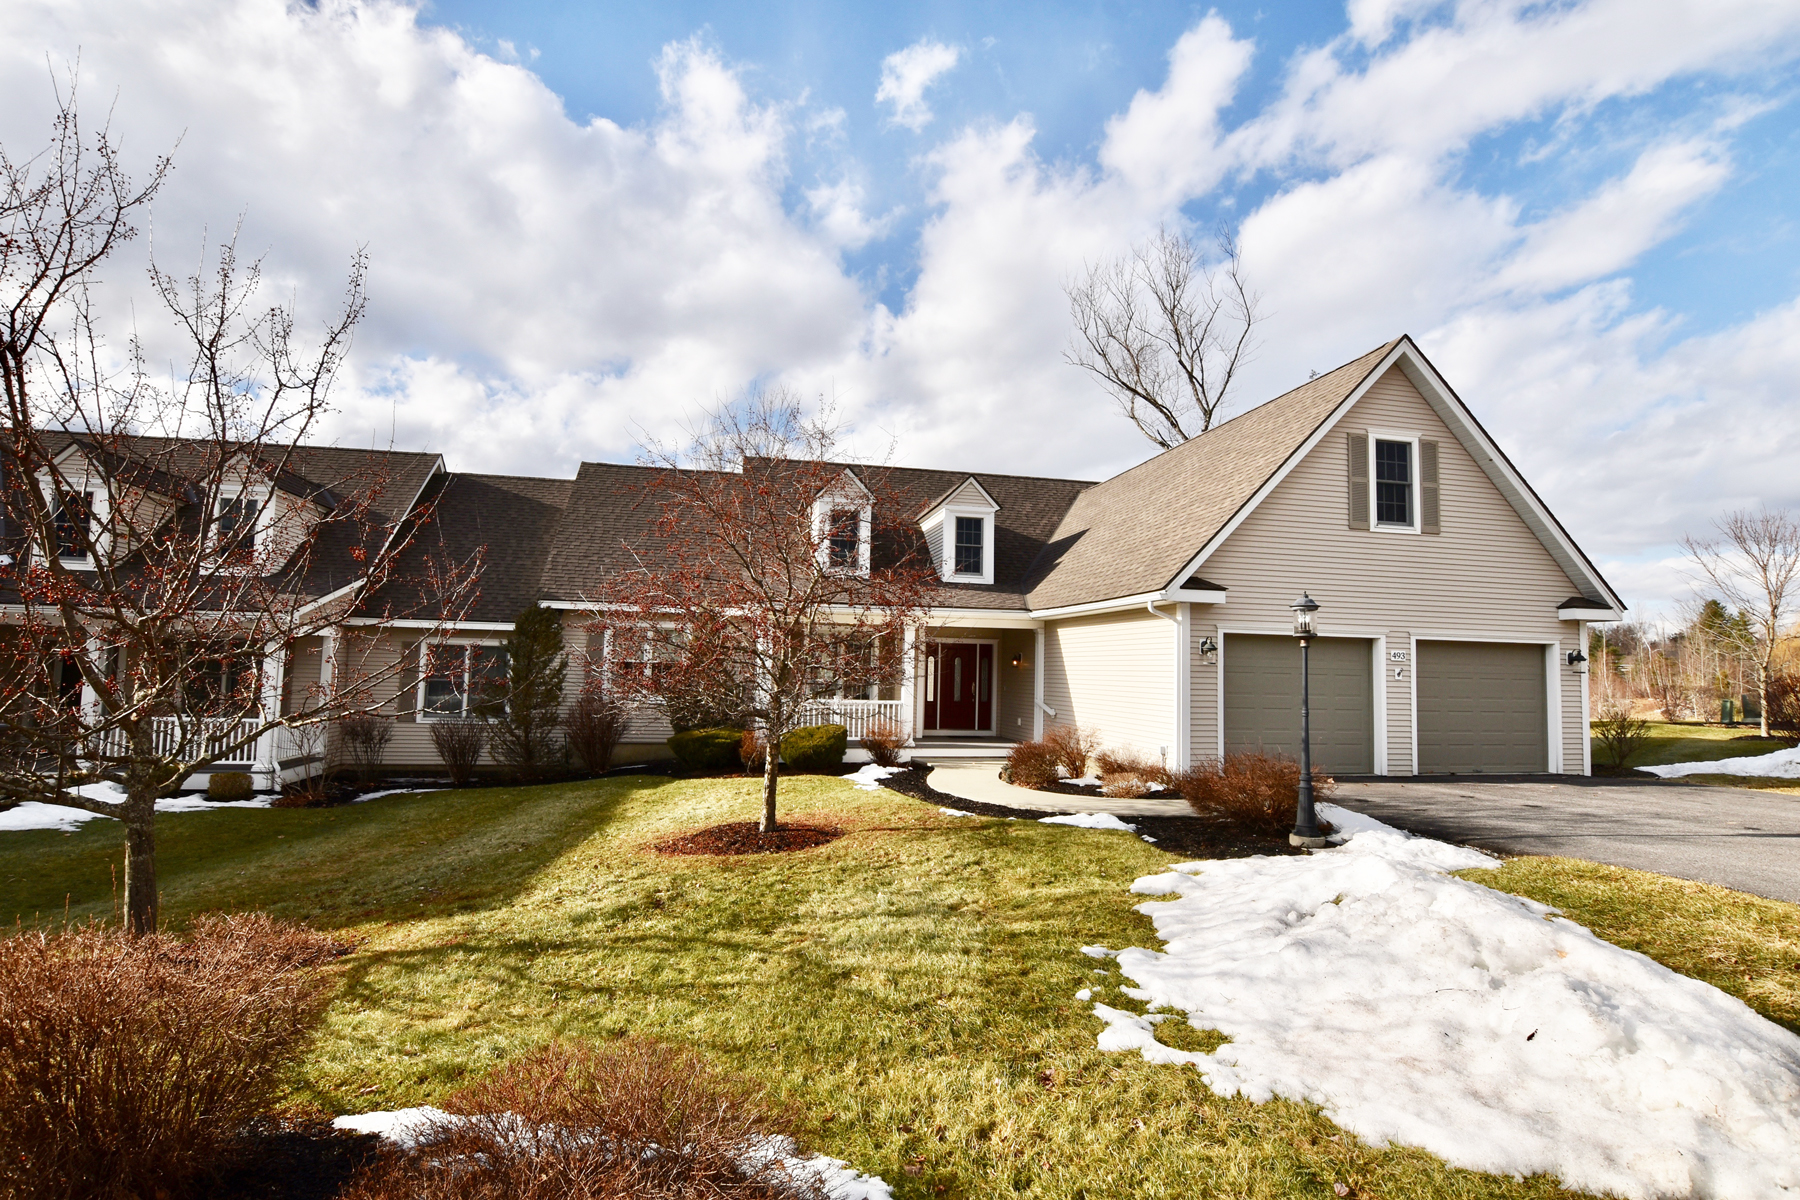 Condominium for Sale at Luxury Adult Community - Live a Carefree Life 493 Carmel Pl 493 Rutland Town, Vermont 05701 United States